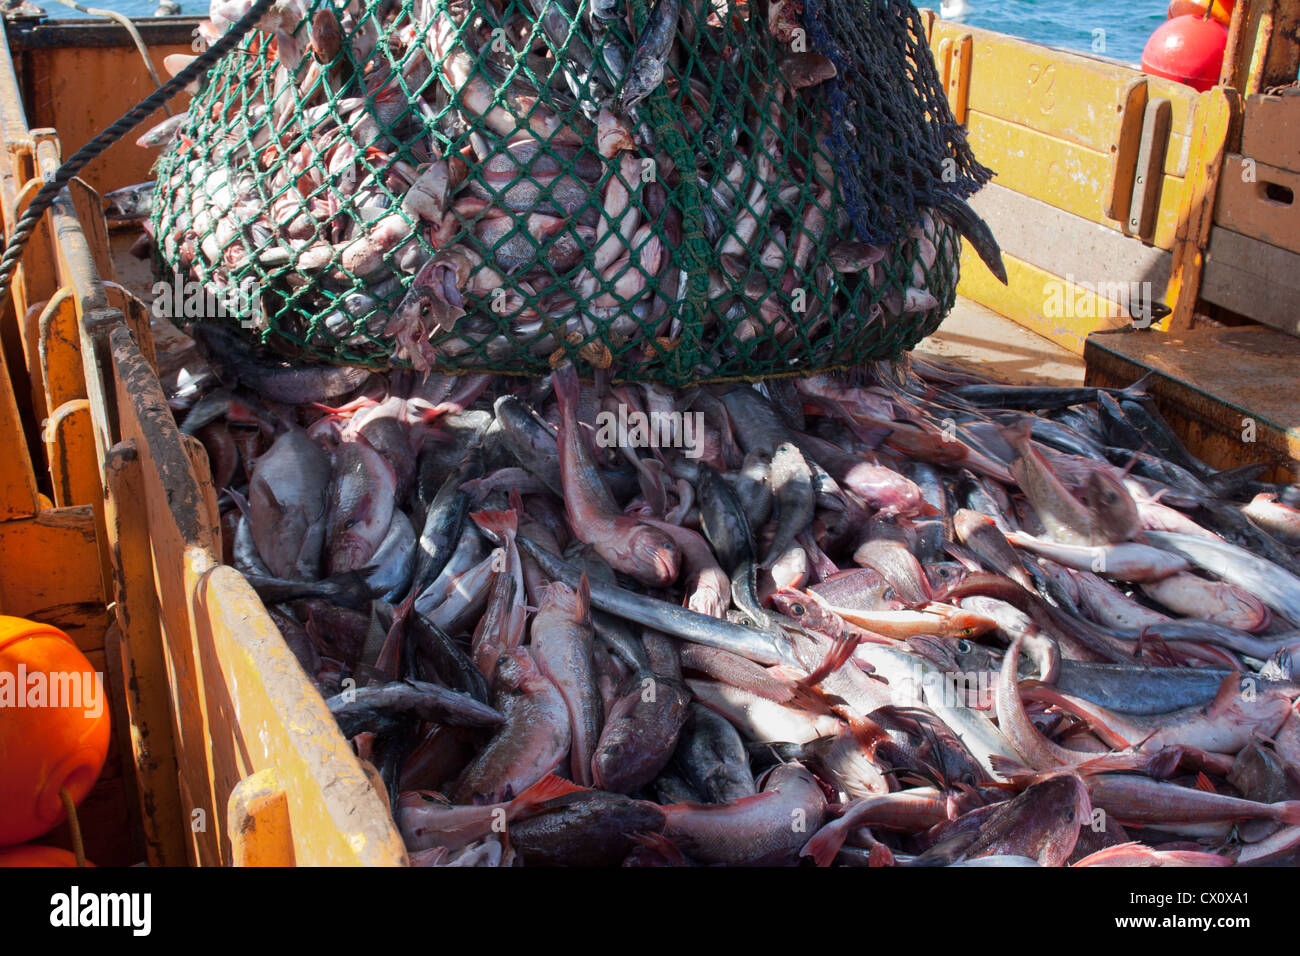 Haul from trawl net on a commercial fishing trawler. - Stock Image